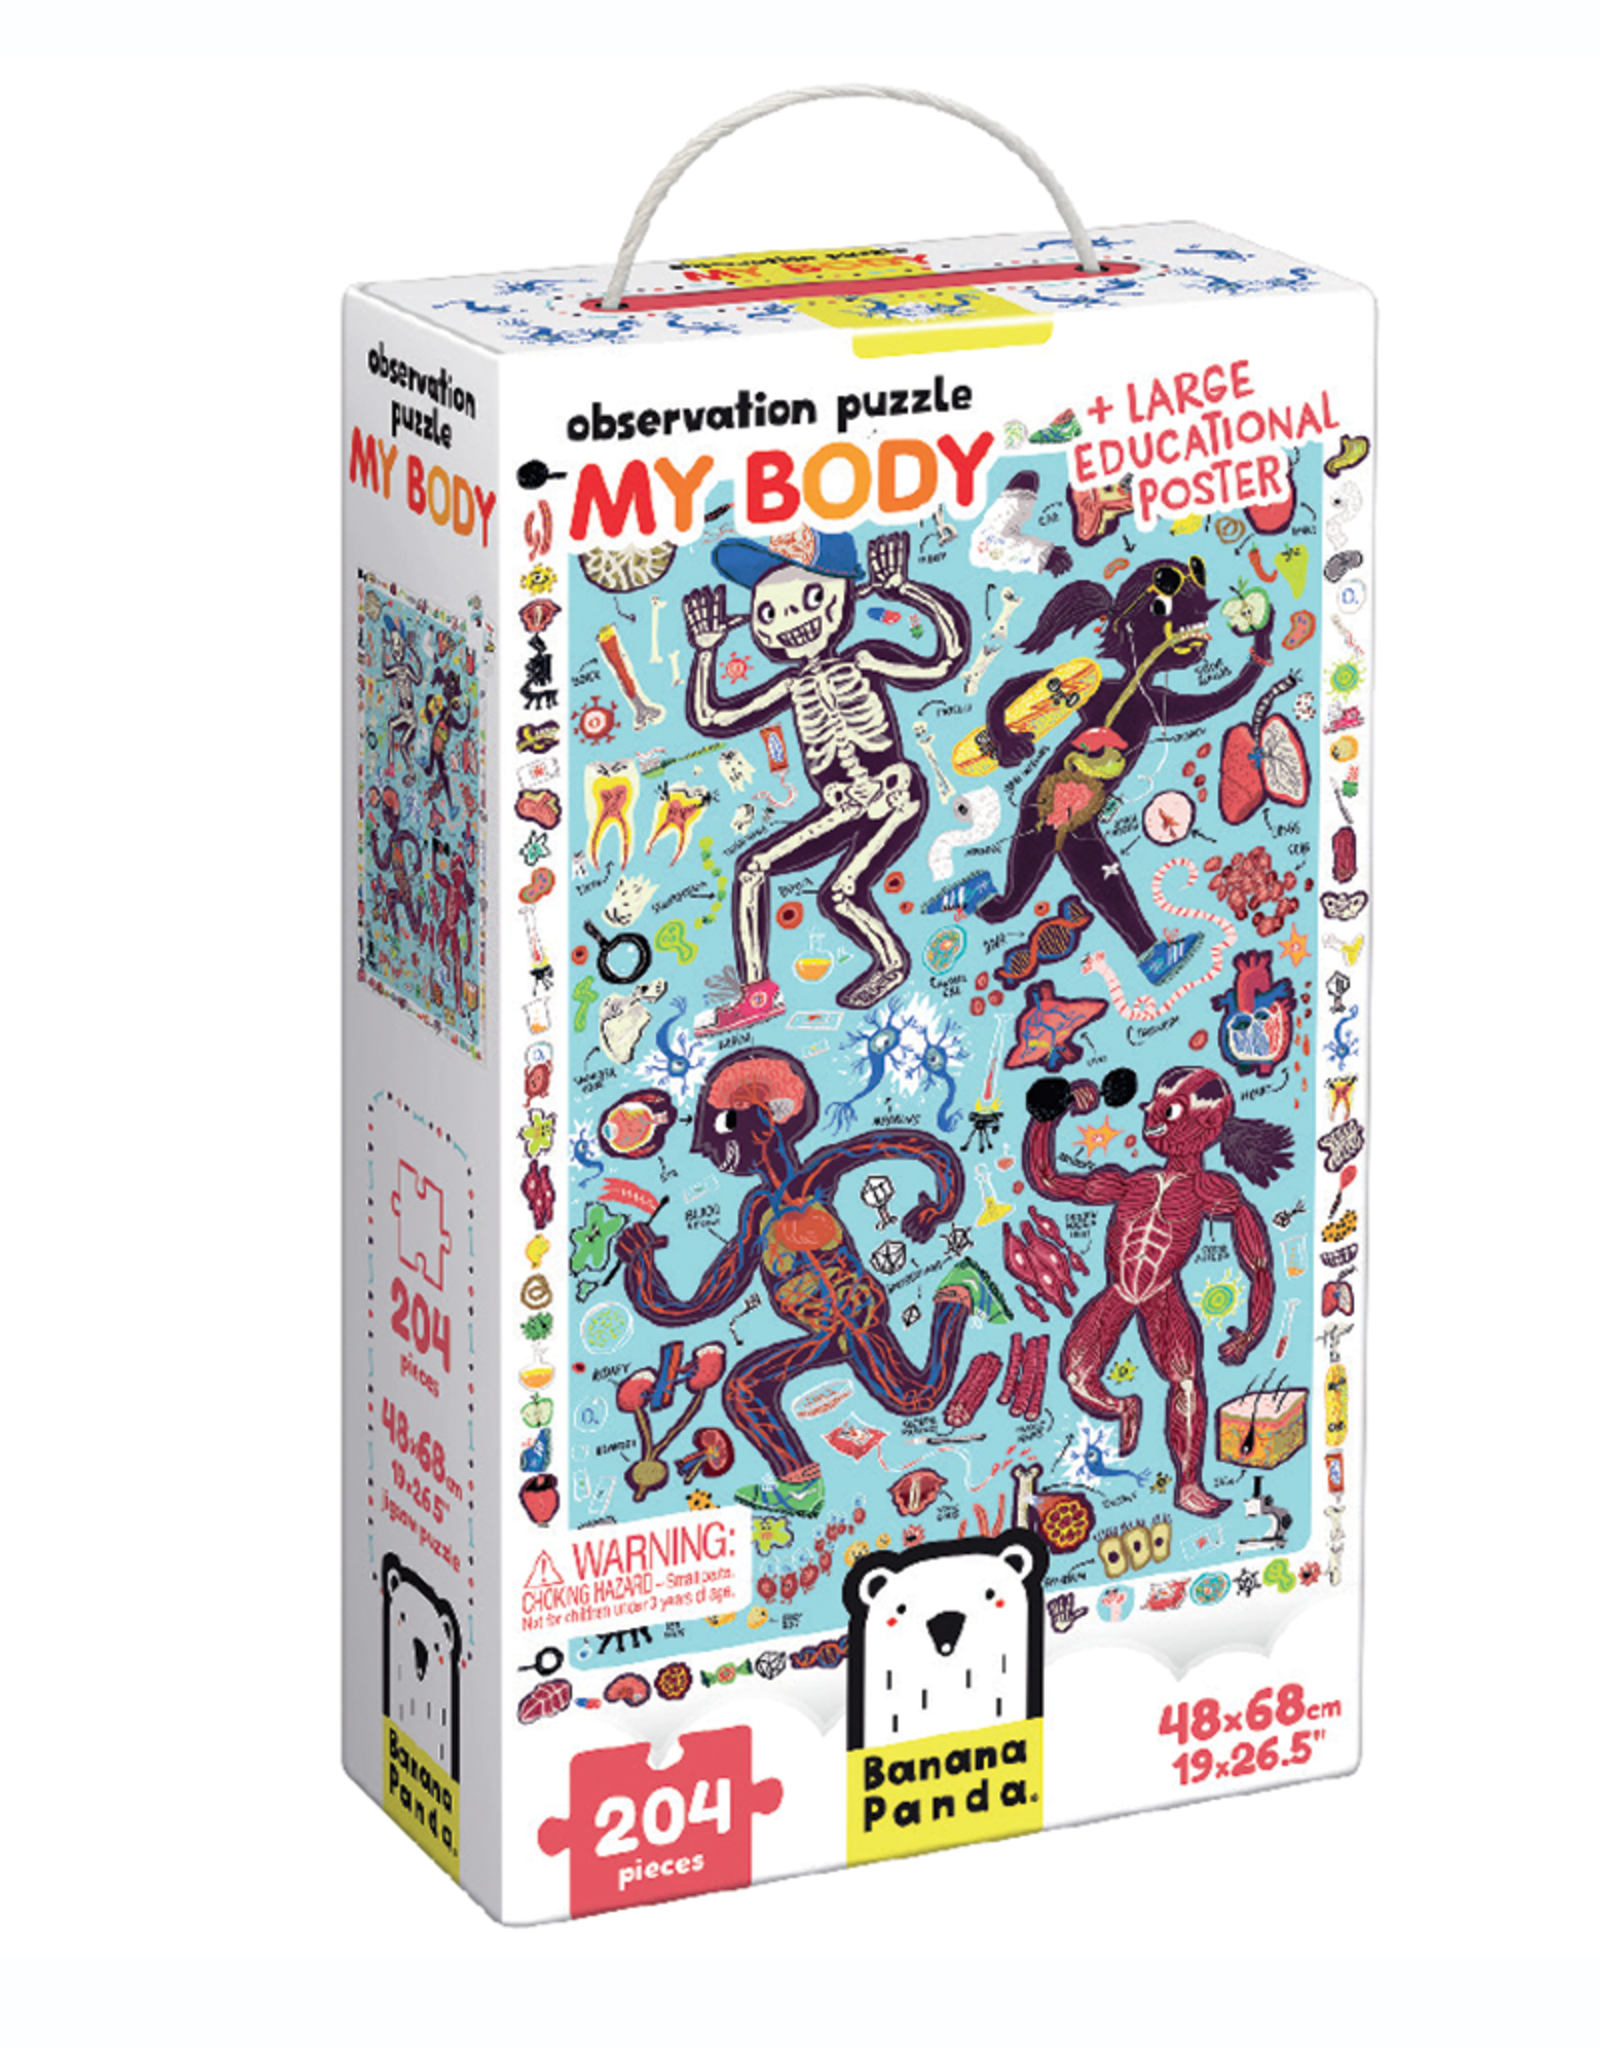 My Body Observation Puzzle